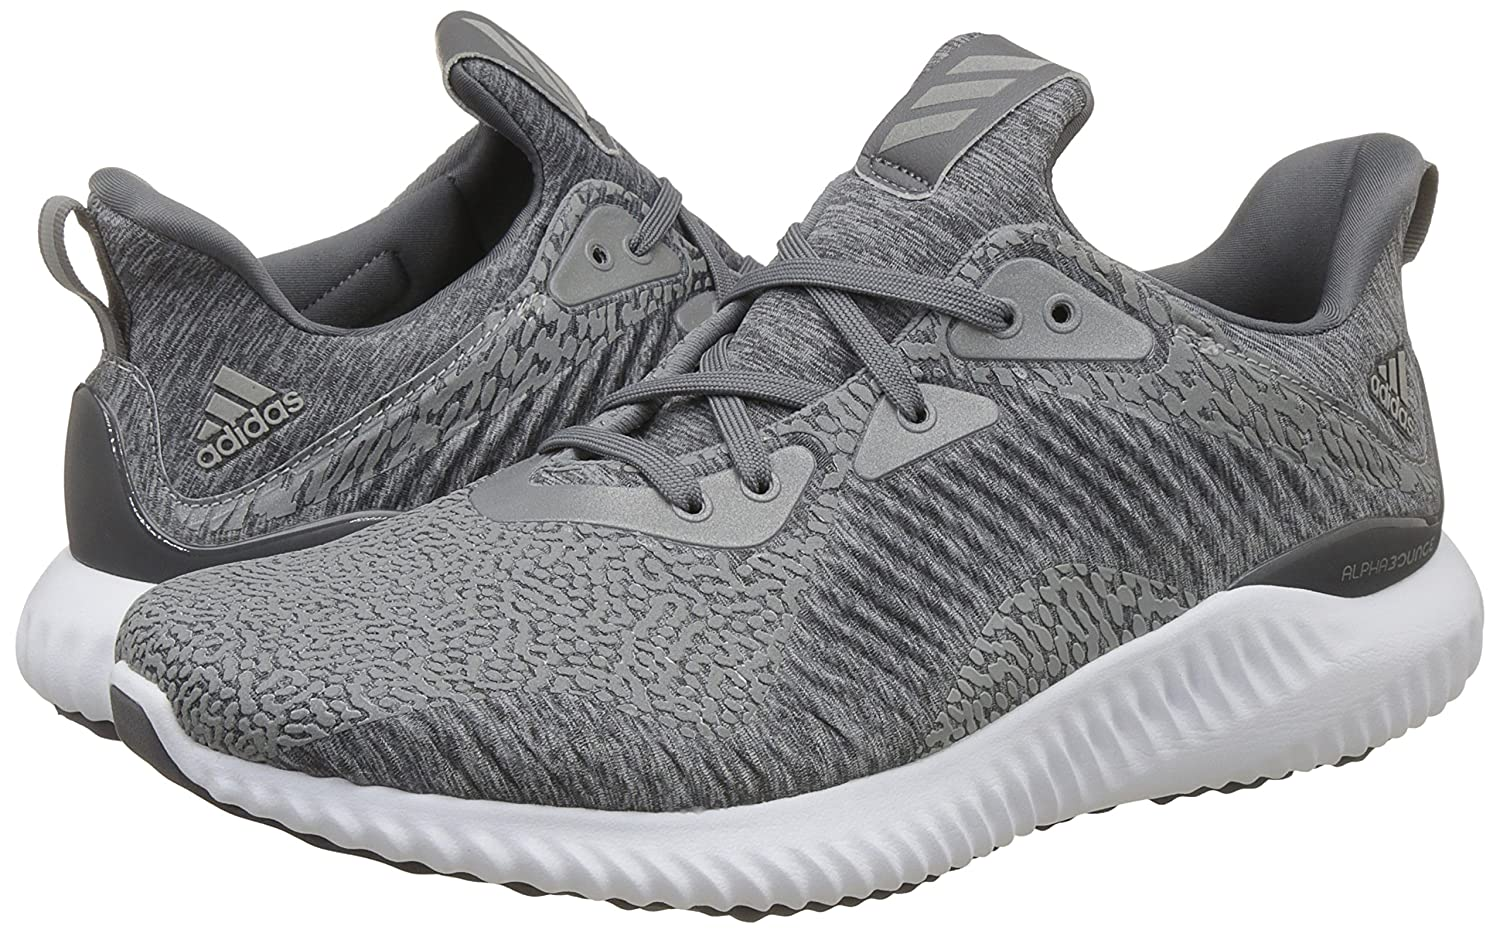 0fc9ef03e383 Adidas Men s Alphabounce HPC AMS M Mgreyh Grefou Ftwwht Running Shoes - 10  UK India (44 1 2 EU)  Buy Online at Low Prices in India - Amazon.in